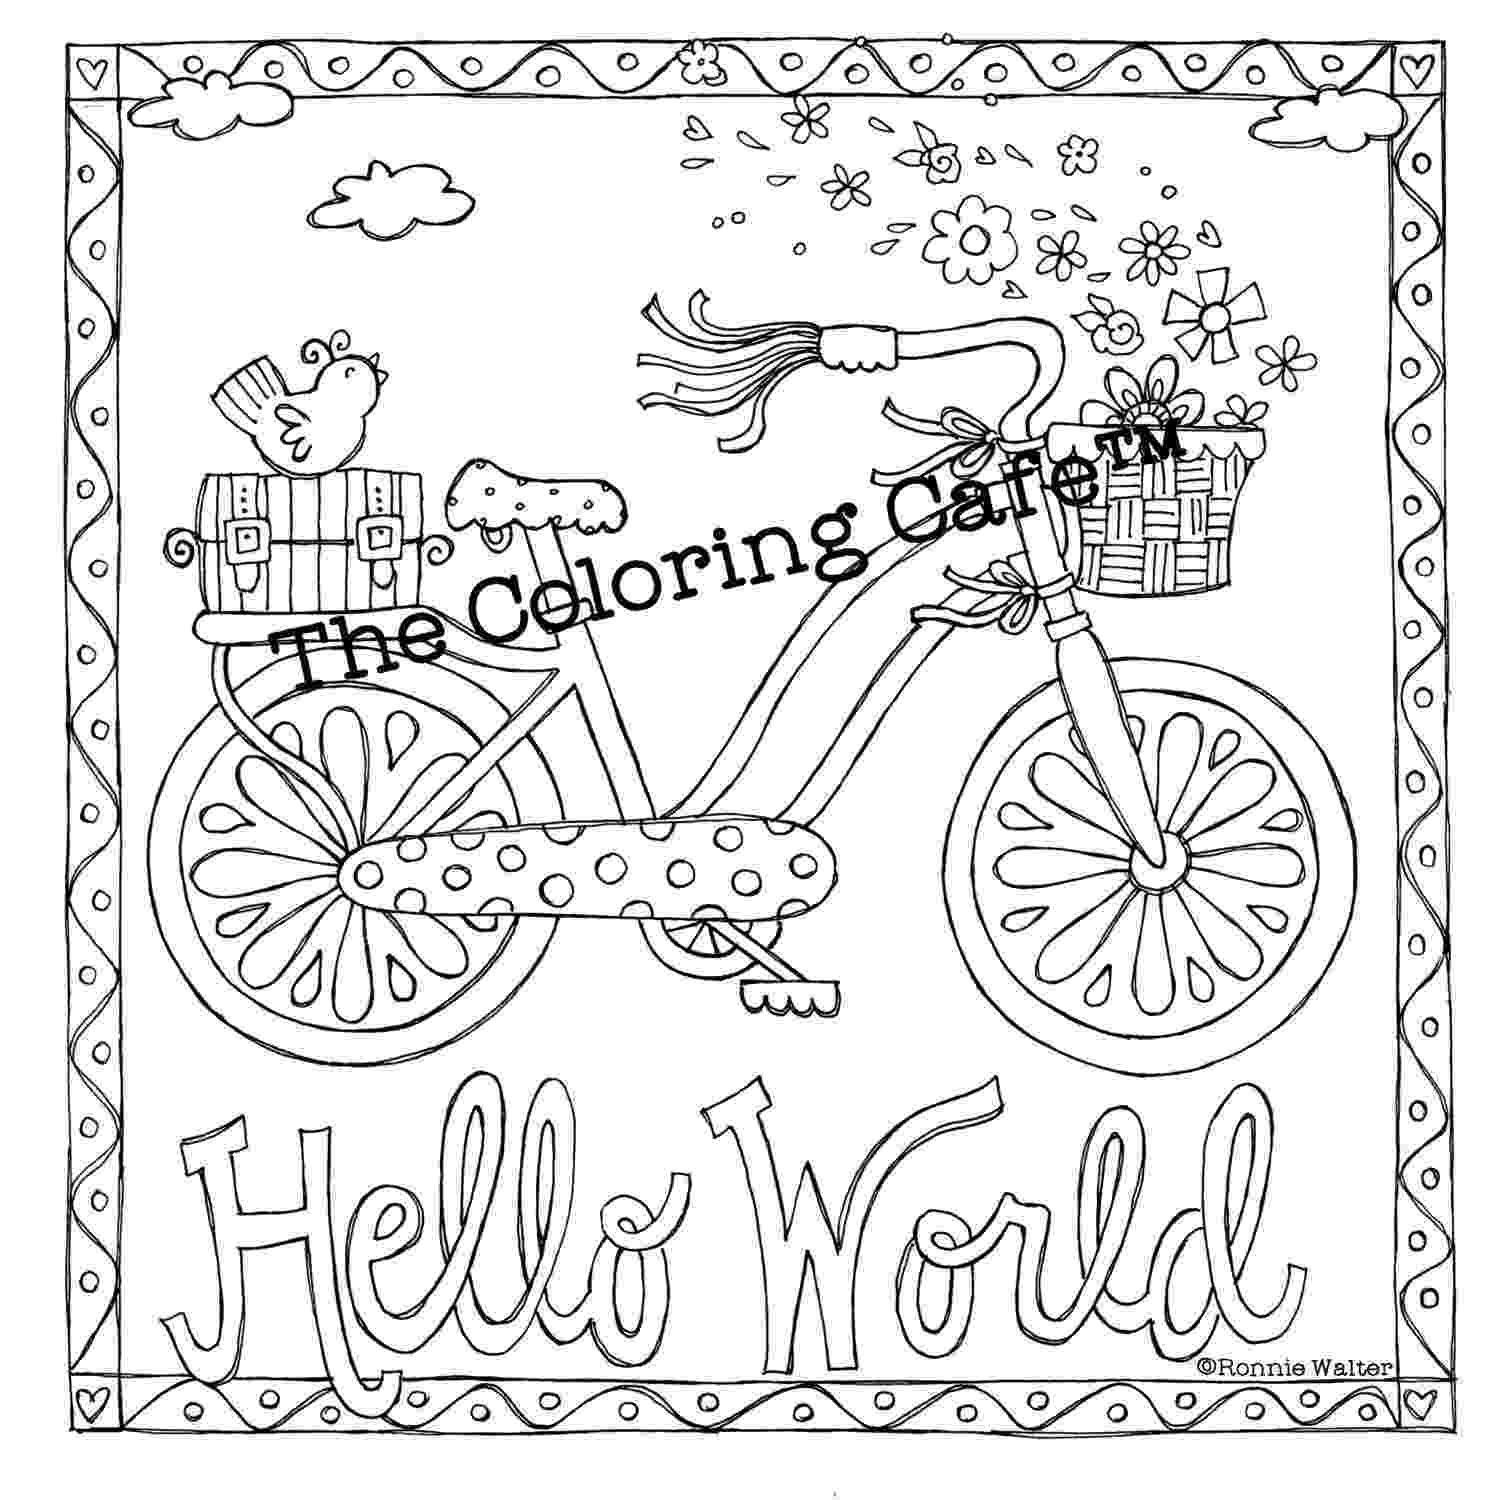 coloring book cafe 17 beste afbeeldingen over coloring pages op pinterest cafe coloring book